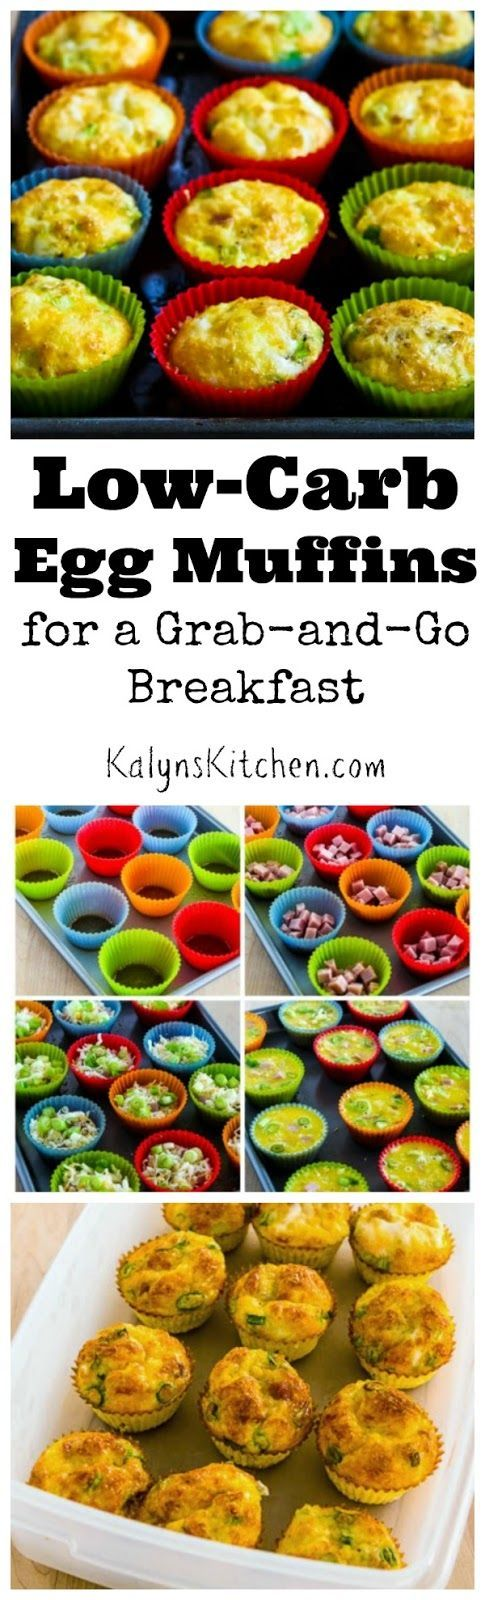 Low Carb Egg Muffins For A Grab And Go Breakfast Recipe